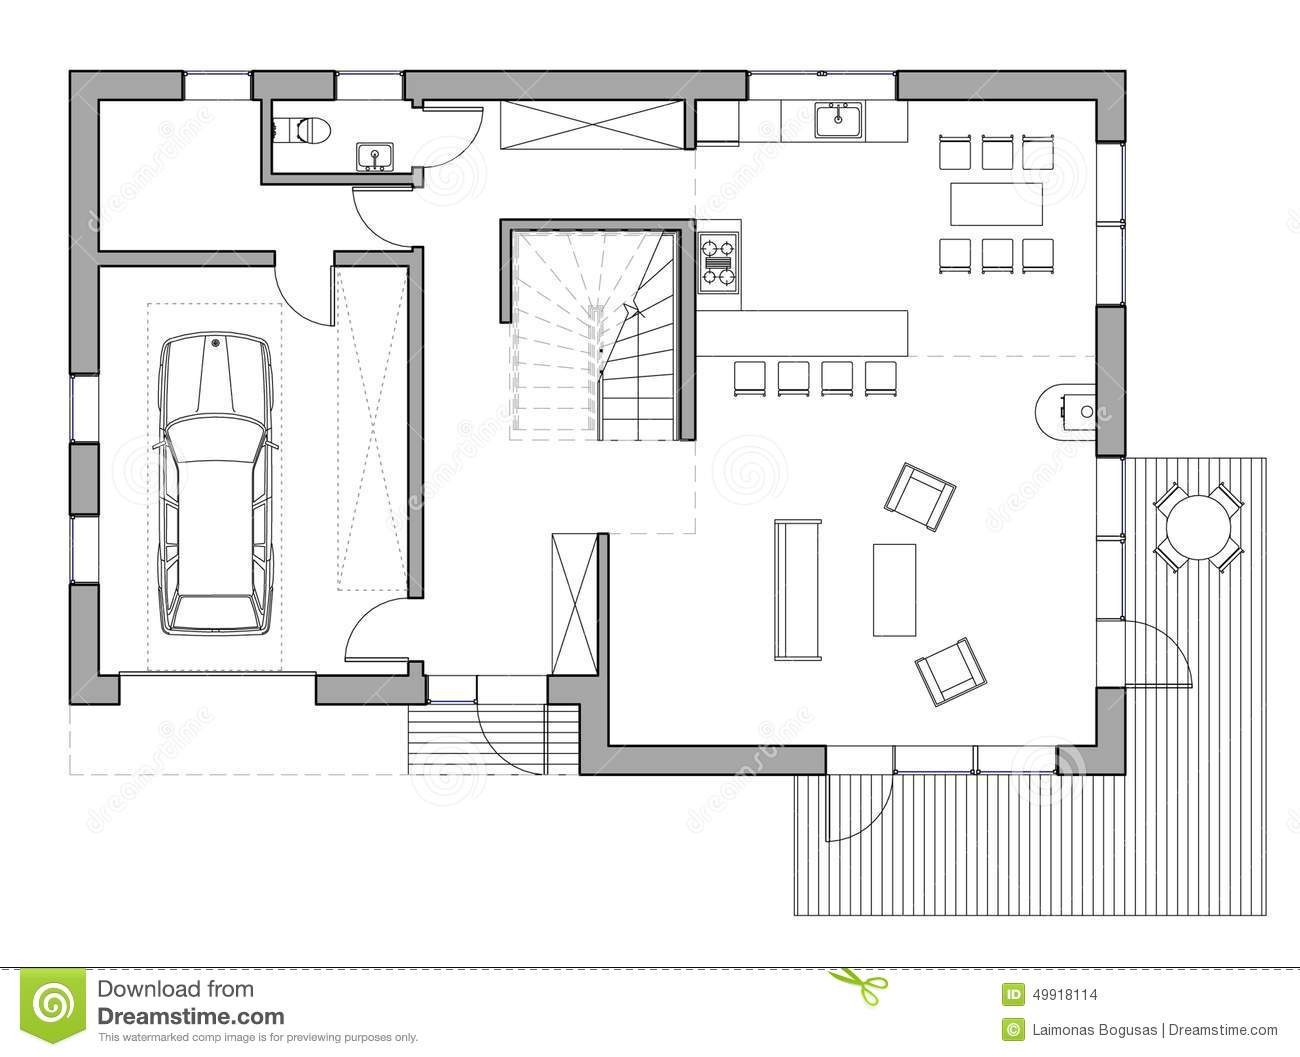 Dessin maison unifamiliale illustration stock image for Disegnare le planimetrie delle case